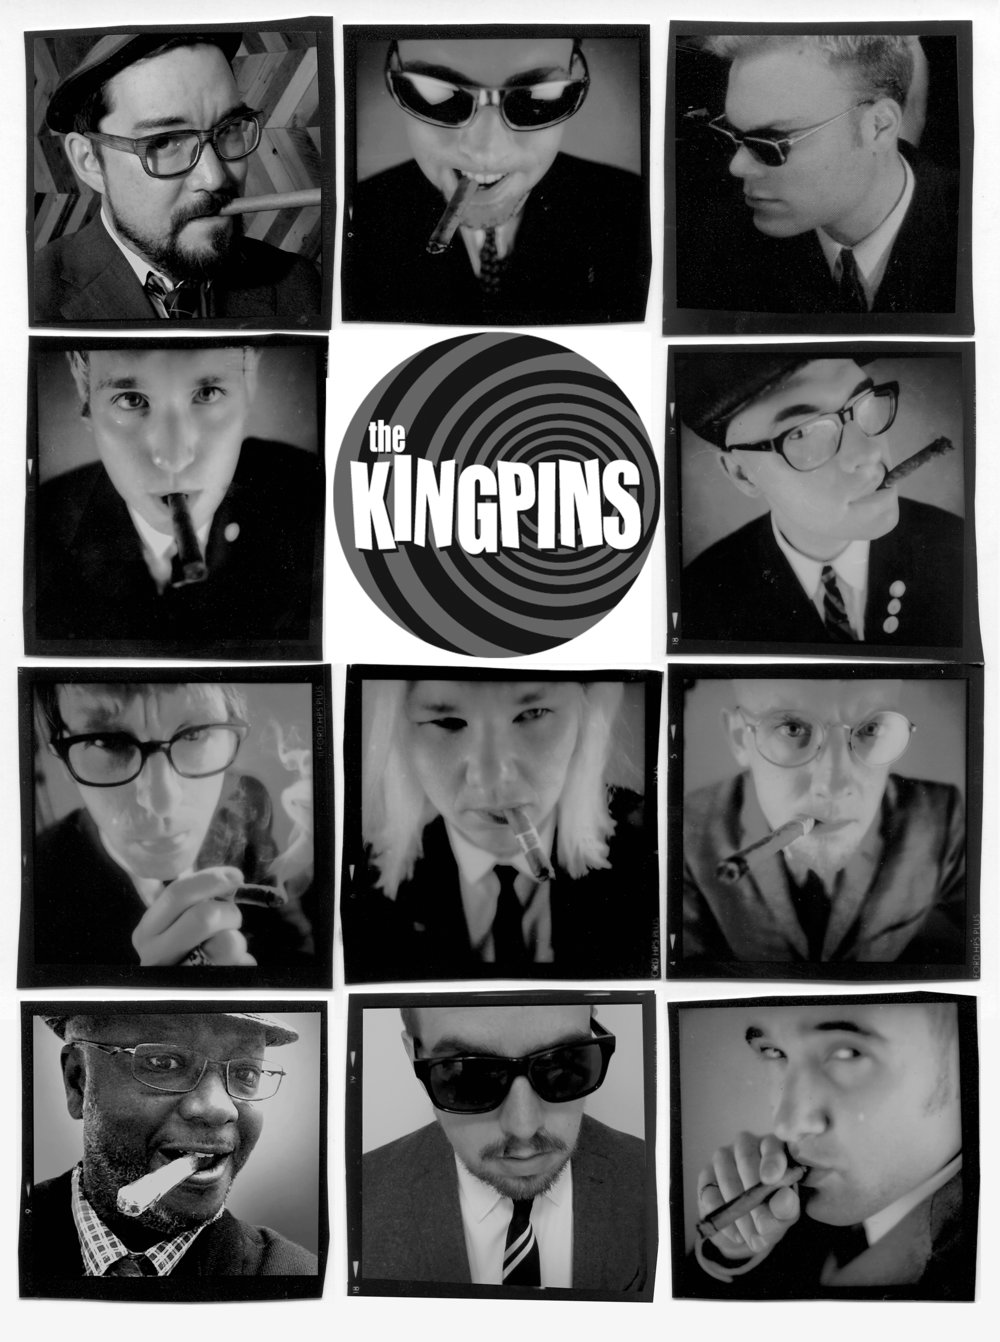 The Kingpins 2017 press_shot_01 with logo.jpg